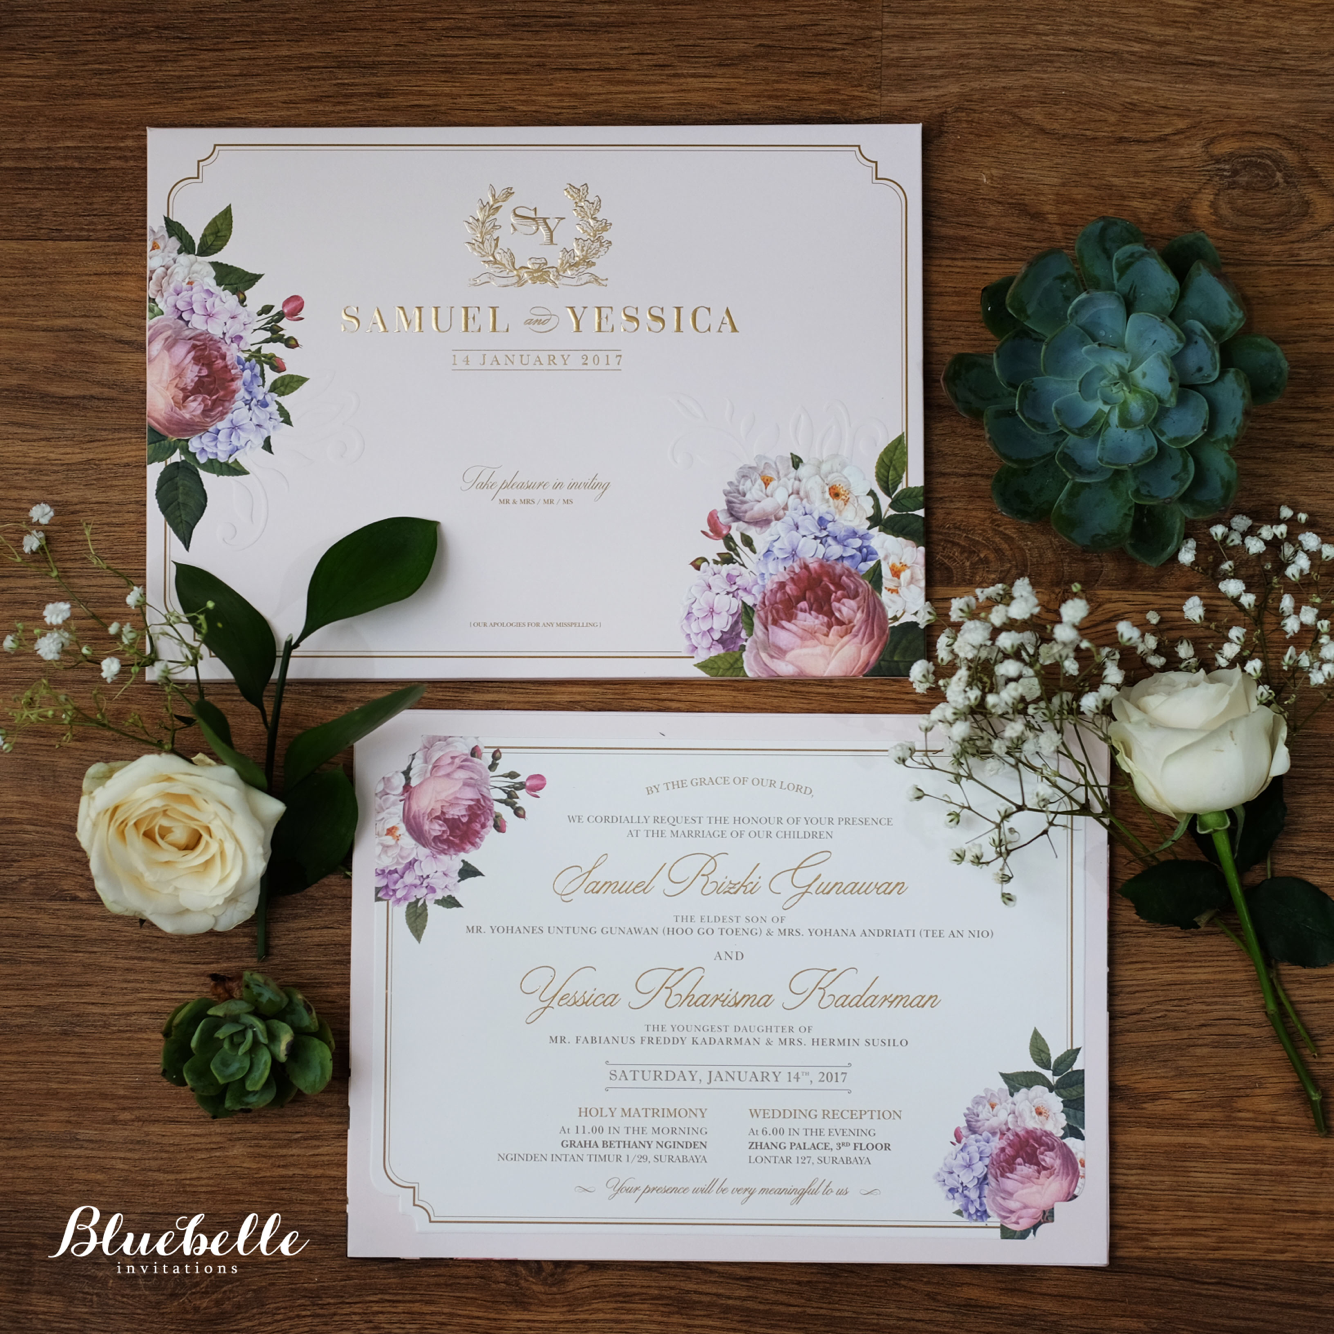 Samuel yessica pink floral wedding invitation by bluebelle samuel yessica pink floral wedding invitation by bluebelle invitations bridestory stopboris Gallery